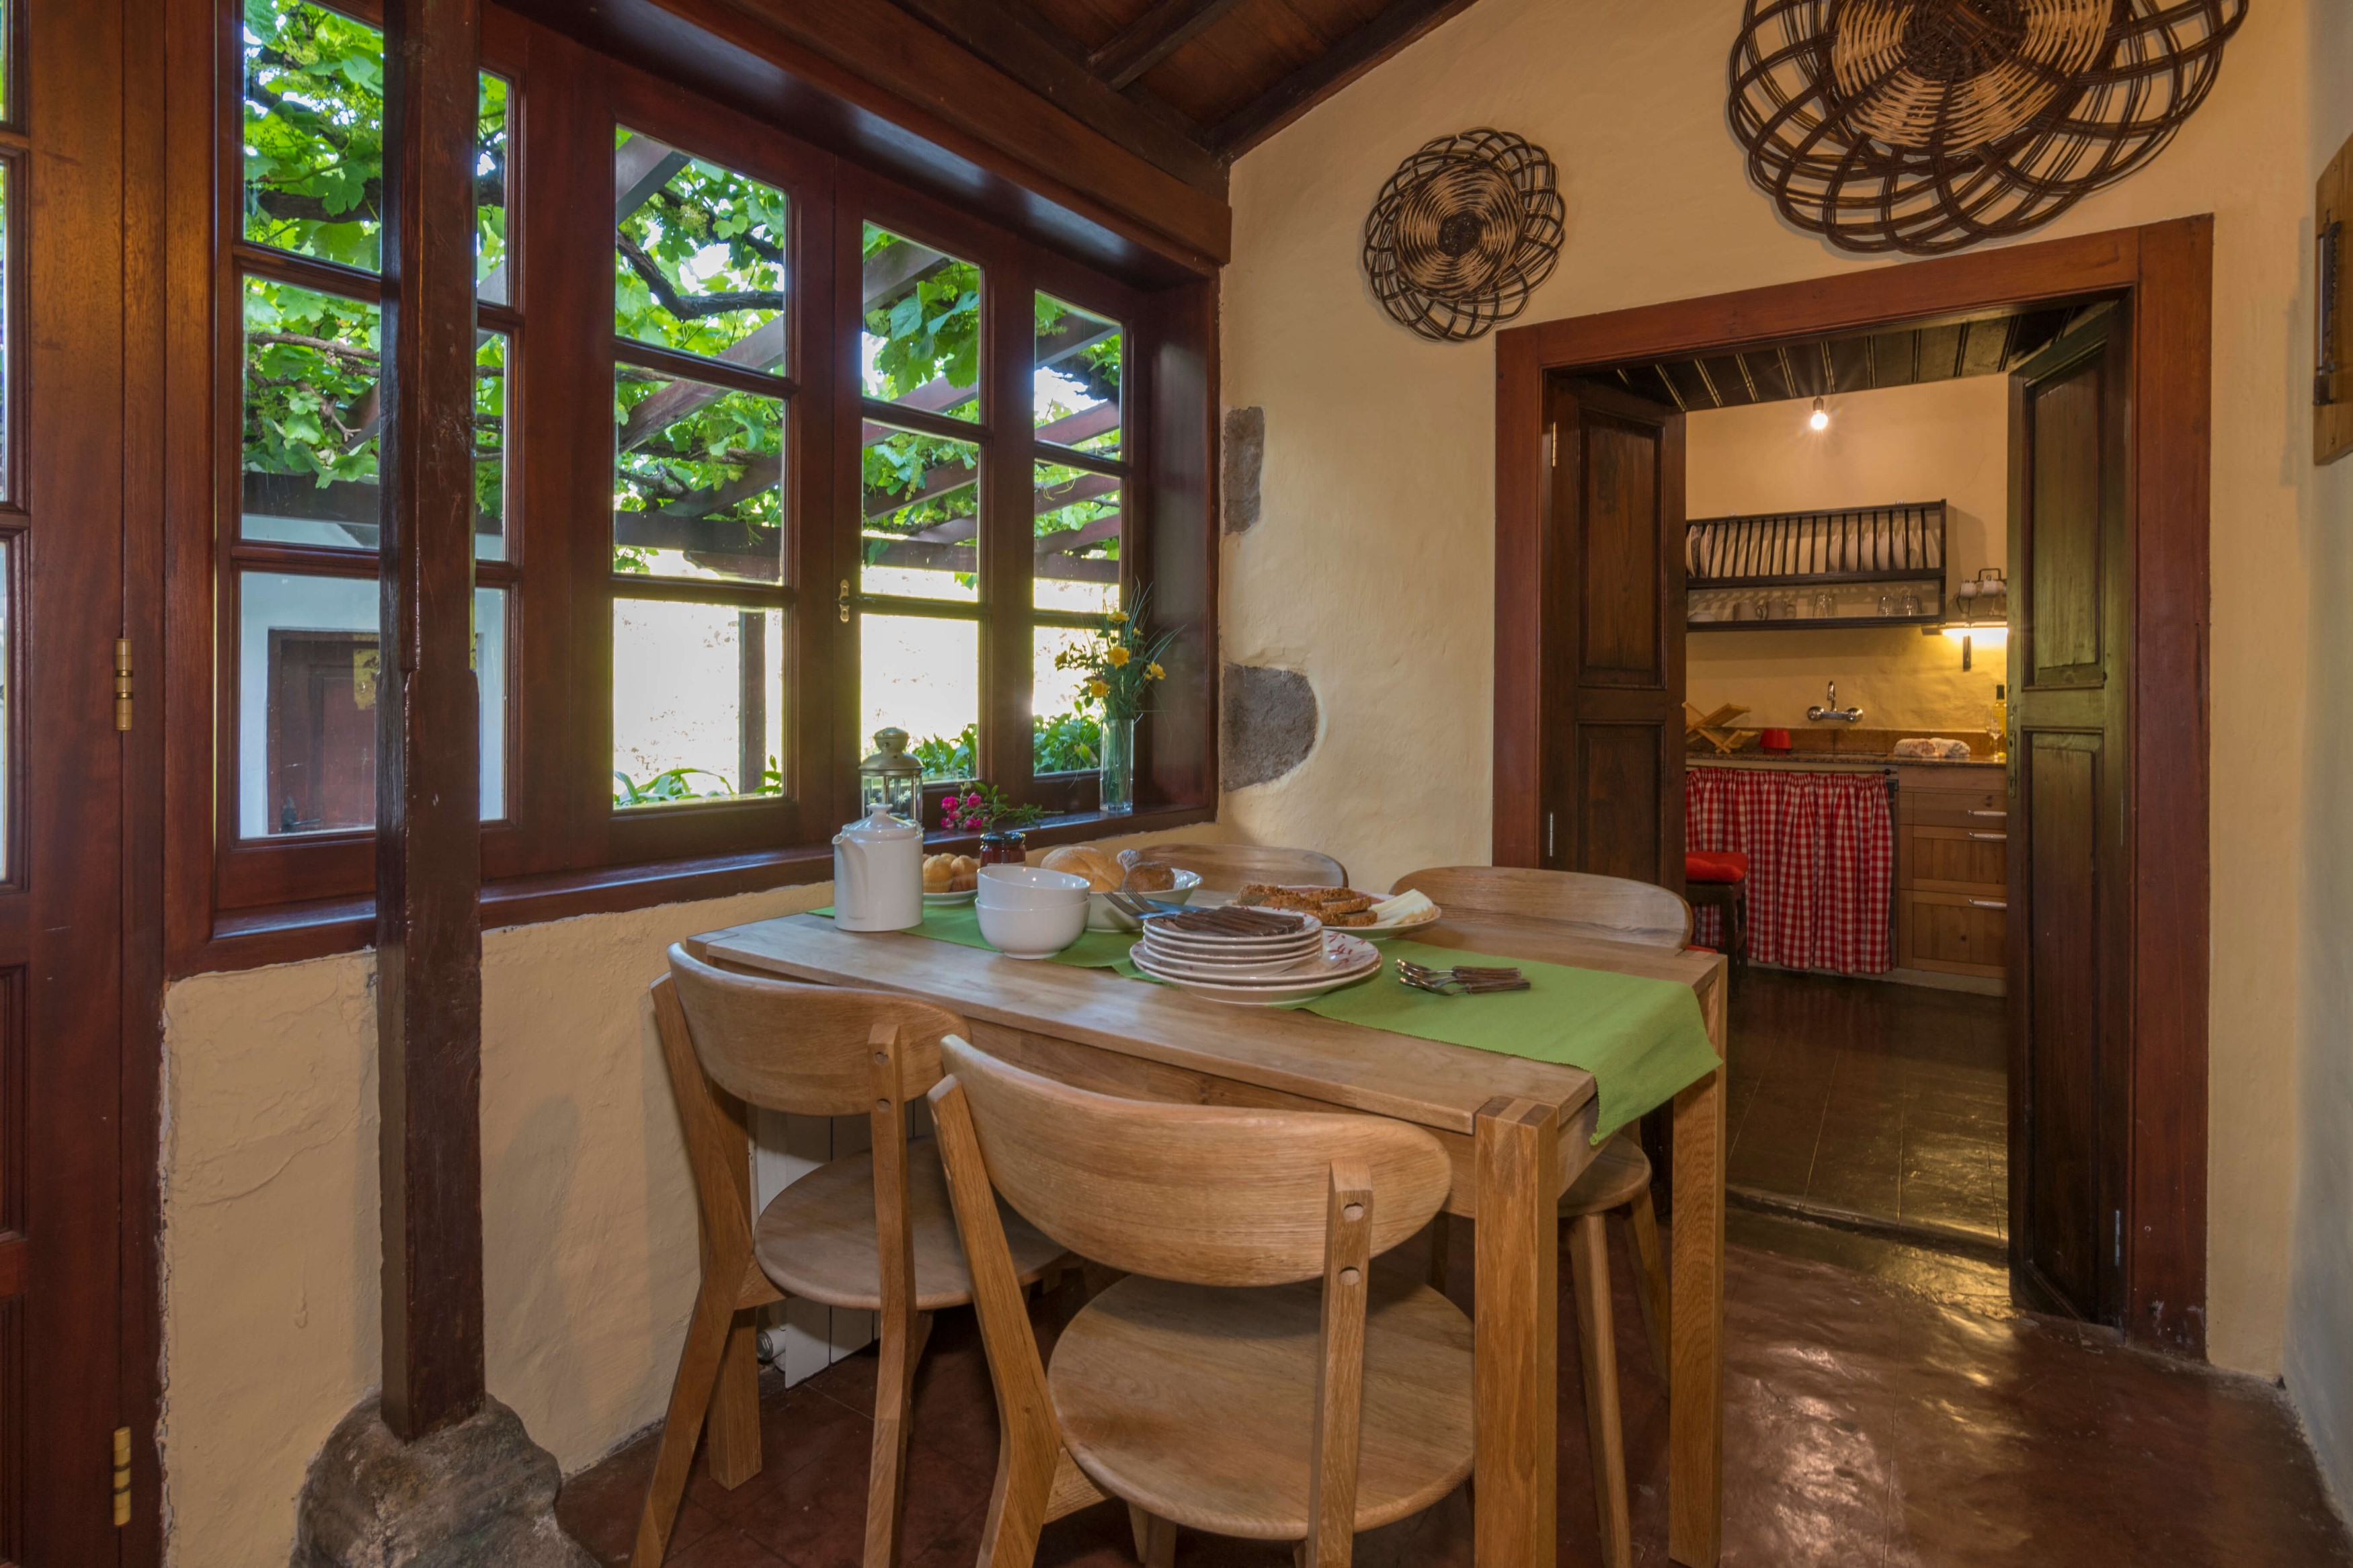 Maison de vacances House - 2 Bedrooms with Pool and WiFi - 106781 (2742990), San Fernando, Grande Canarie, Iles Canaries, Espagne, image 5